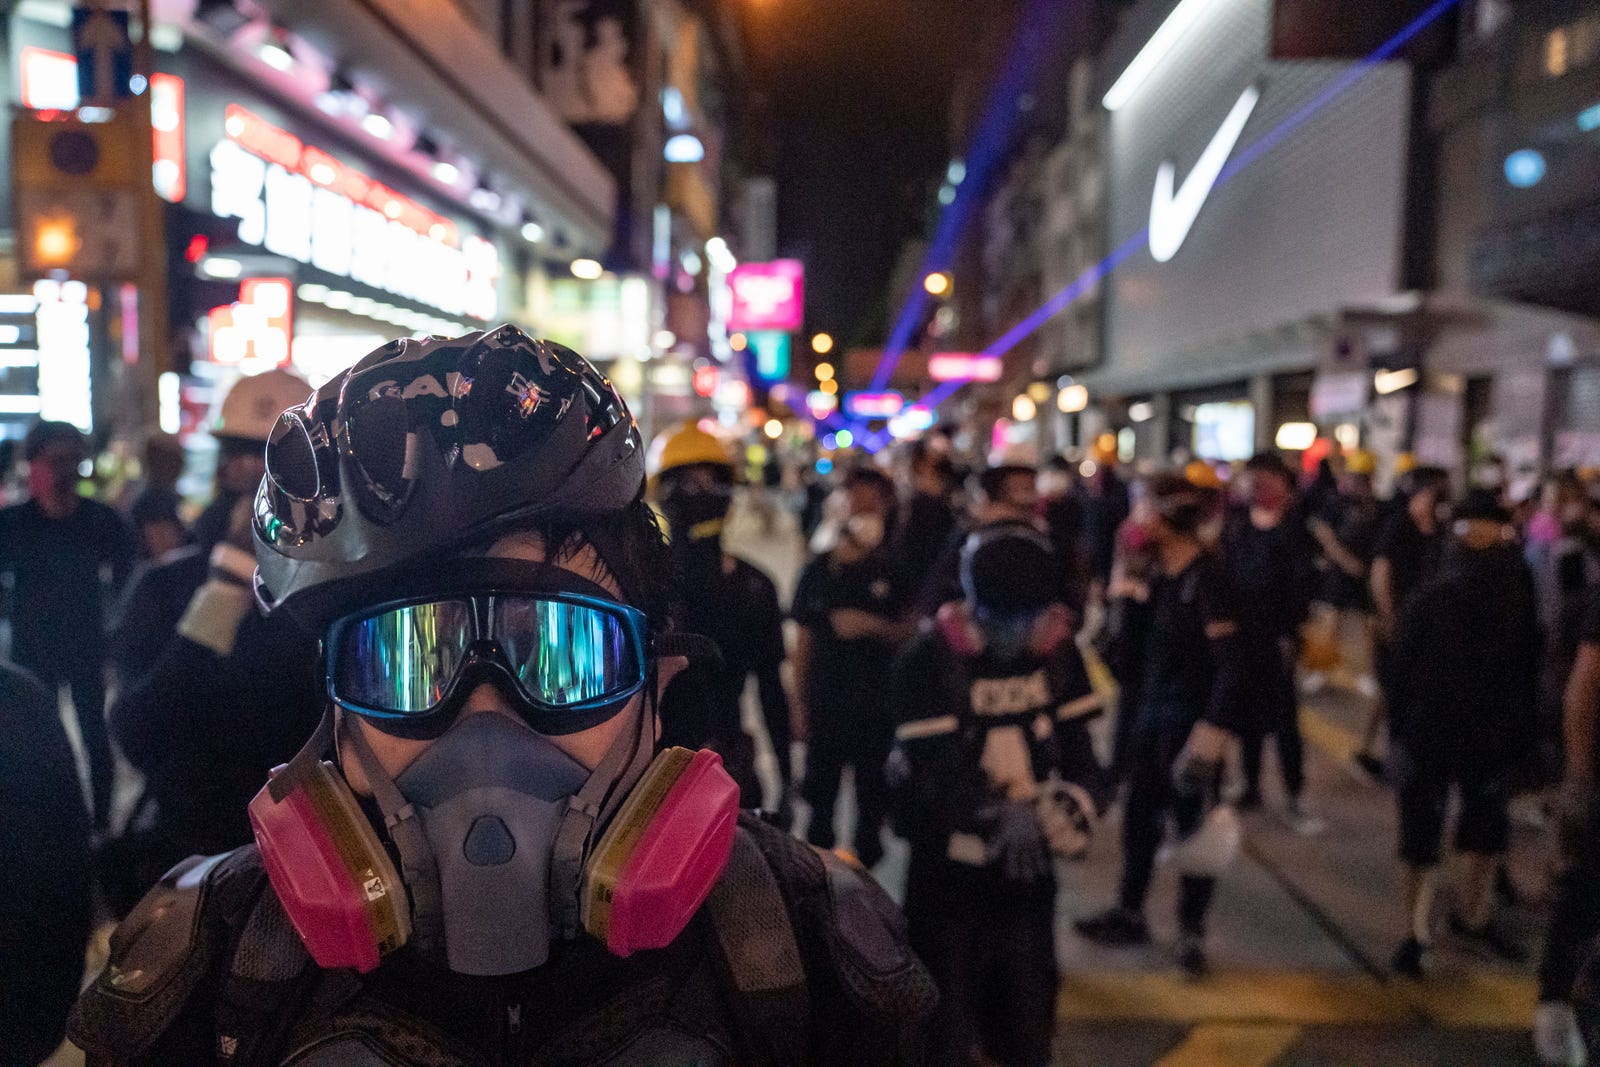 Protesters occupy a street during a standoff with police at a demonstration in Tai Wan on August 10, 2019 in Hong Kong, China.